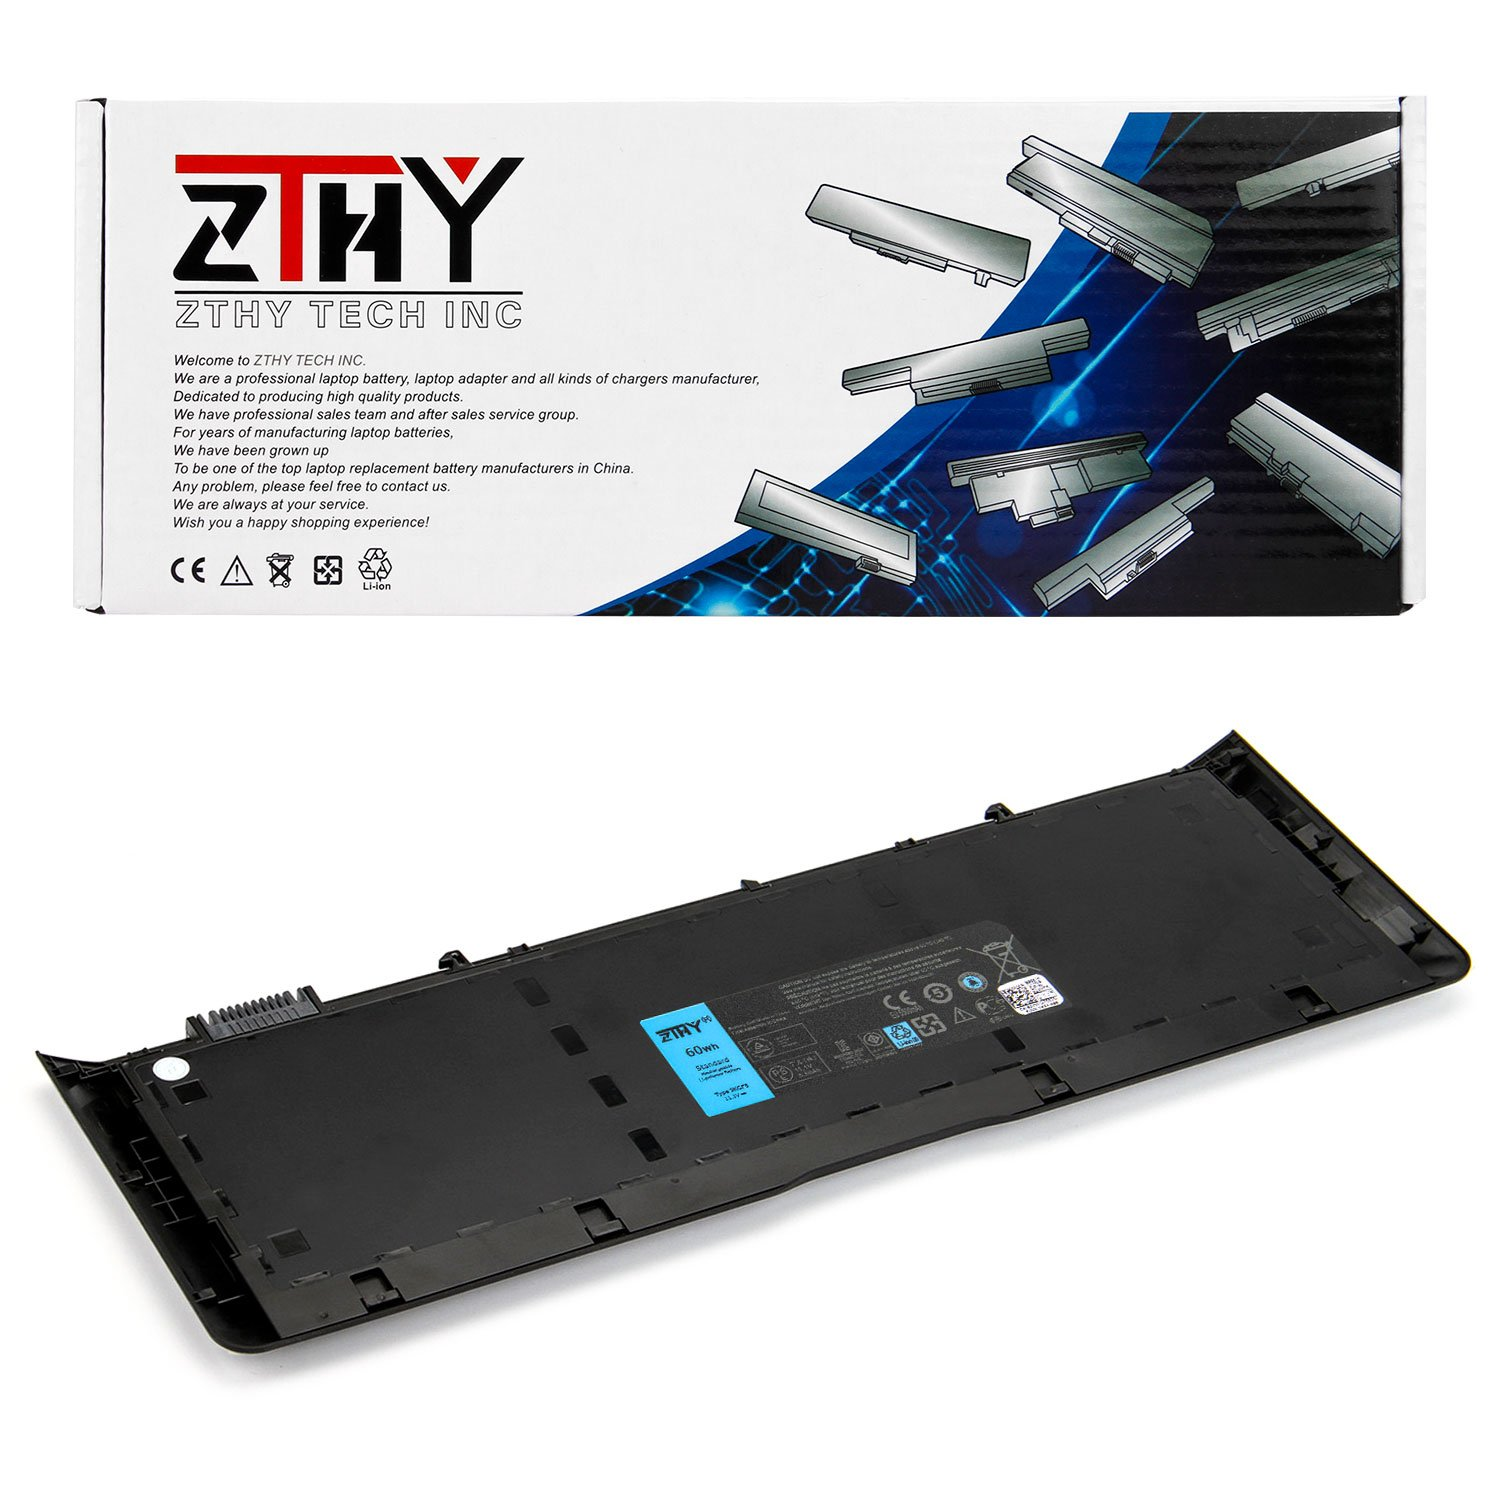 ZTHY Compatible 9KGF8 Laptop Battery Replacement for Dell Latitude 6430U L6430U Ultrabook Series 7XHVM TRM4D 312-1425 312-1424 6FNTV 7HRJW 7HTJW XX1D1 11.1V 60Wh 6-Cell